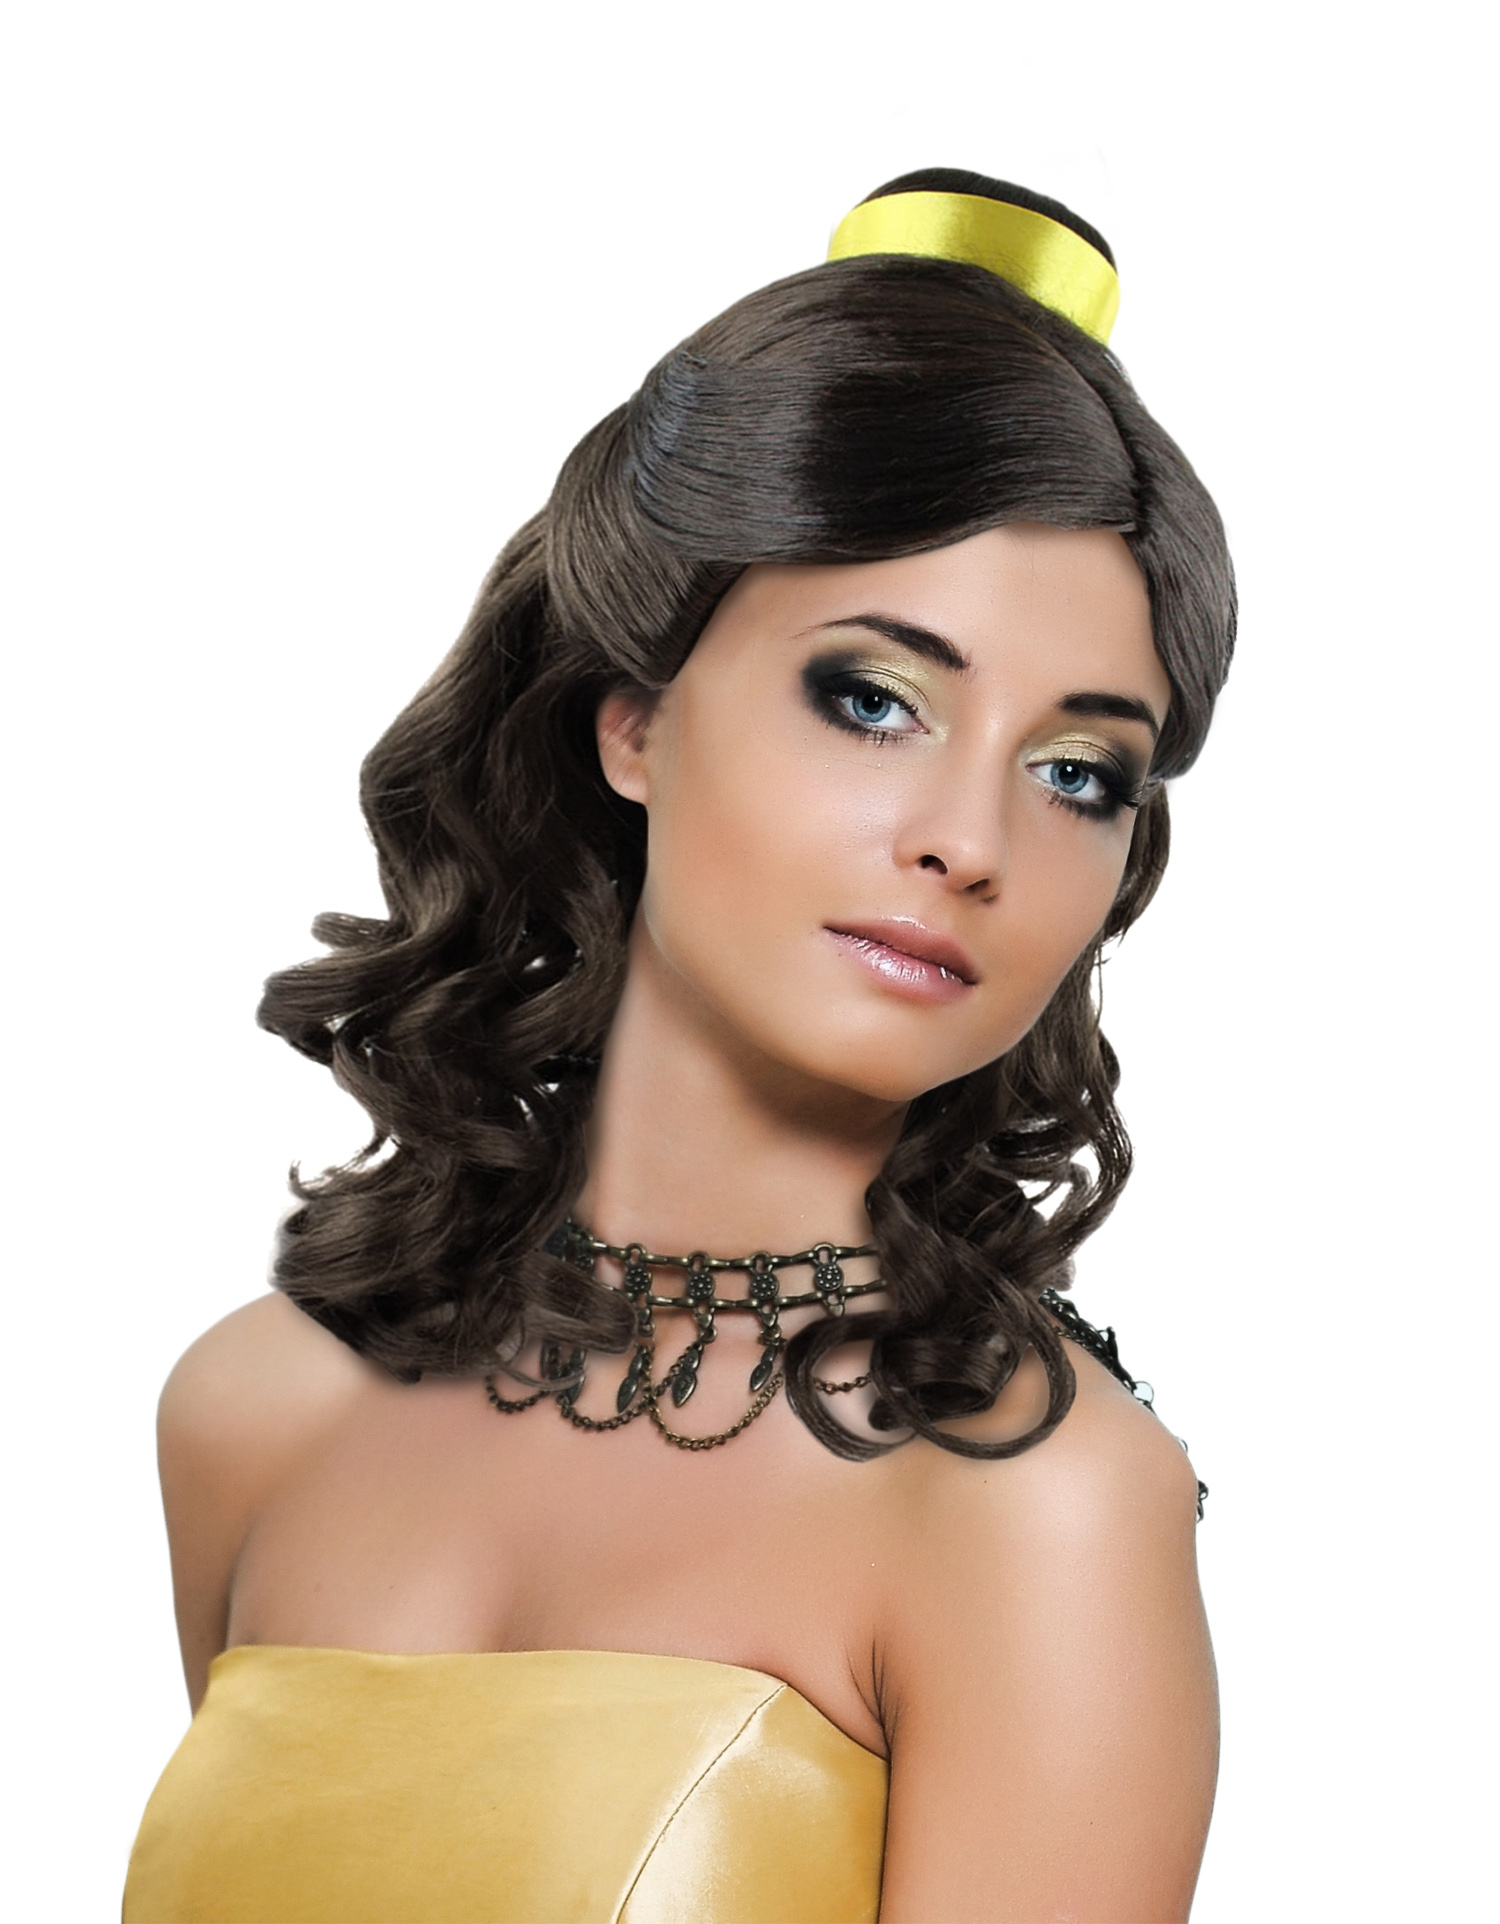 Princess Belle Wig Long Curly Wave Hair With Ribbon For Cosplay Costume Party Dress Up Halloween Dark Brown